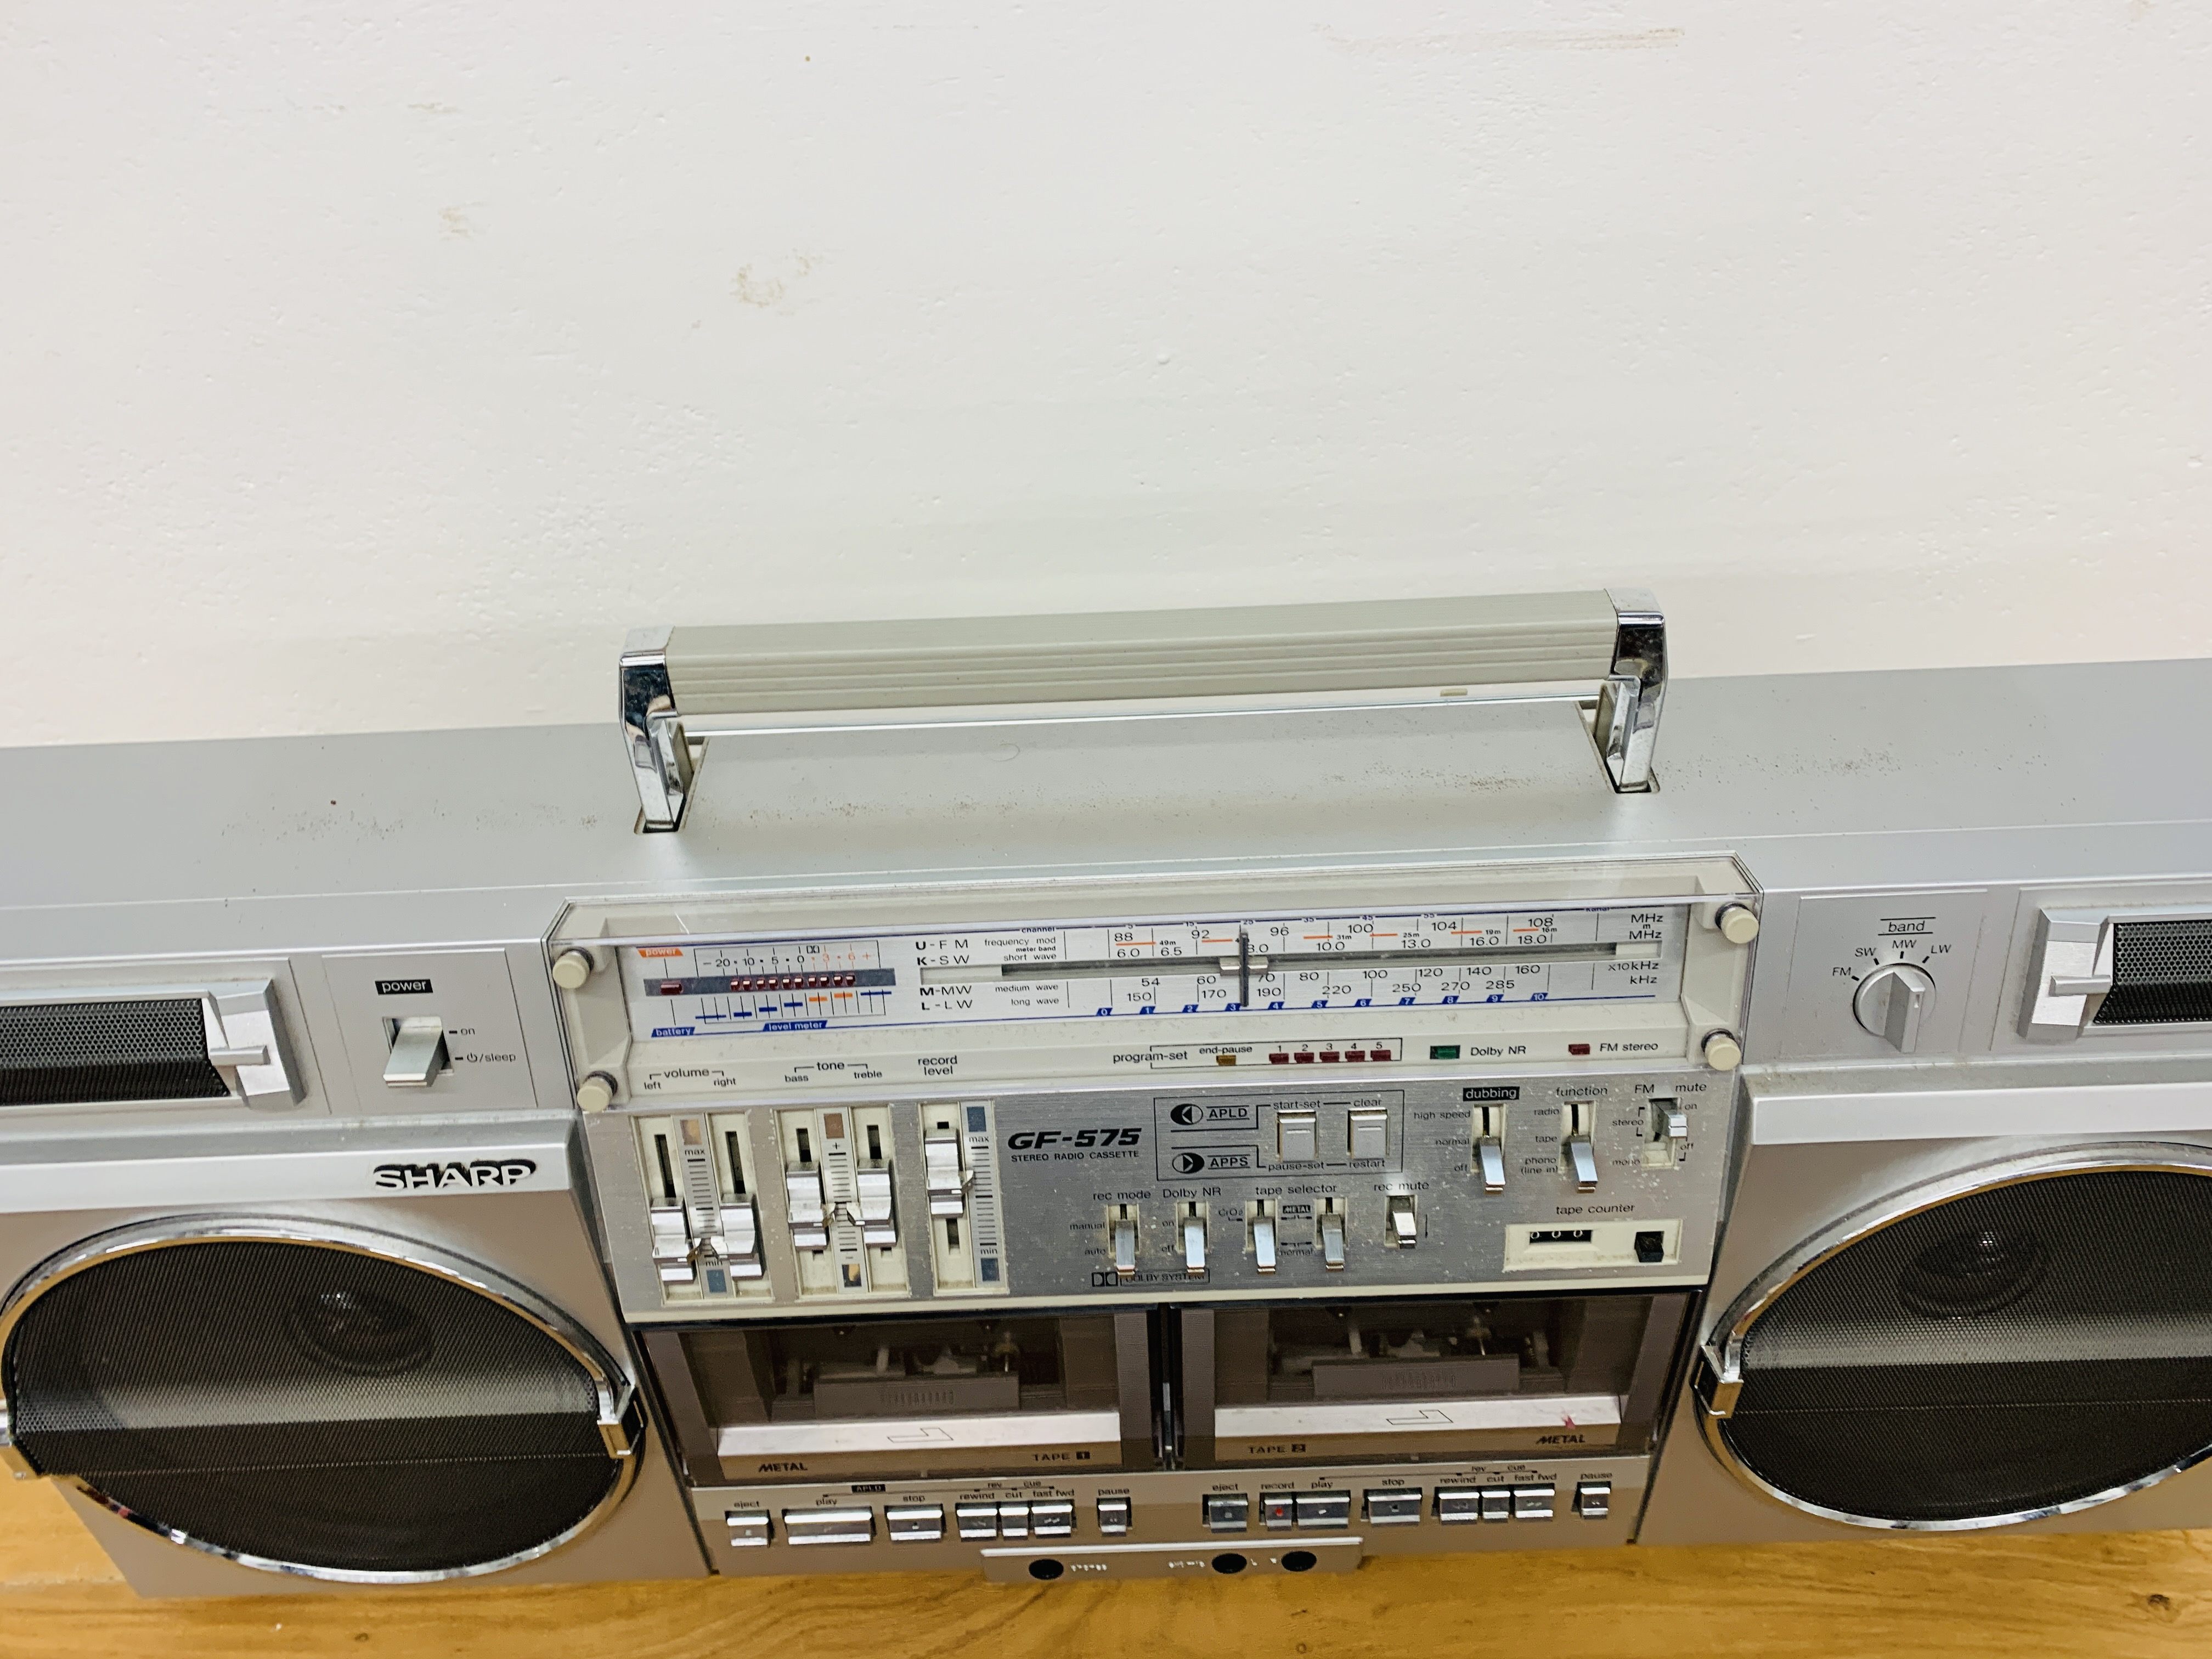 SHARP DELUXE FH / SW / MW / LW 4 BAND STEREO RADIO CASSETTE TAPE RECORDER GF- 575E WITH ORIGINAL - Image 7 of 8